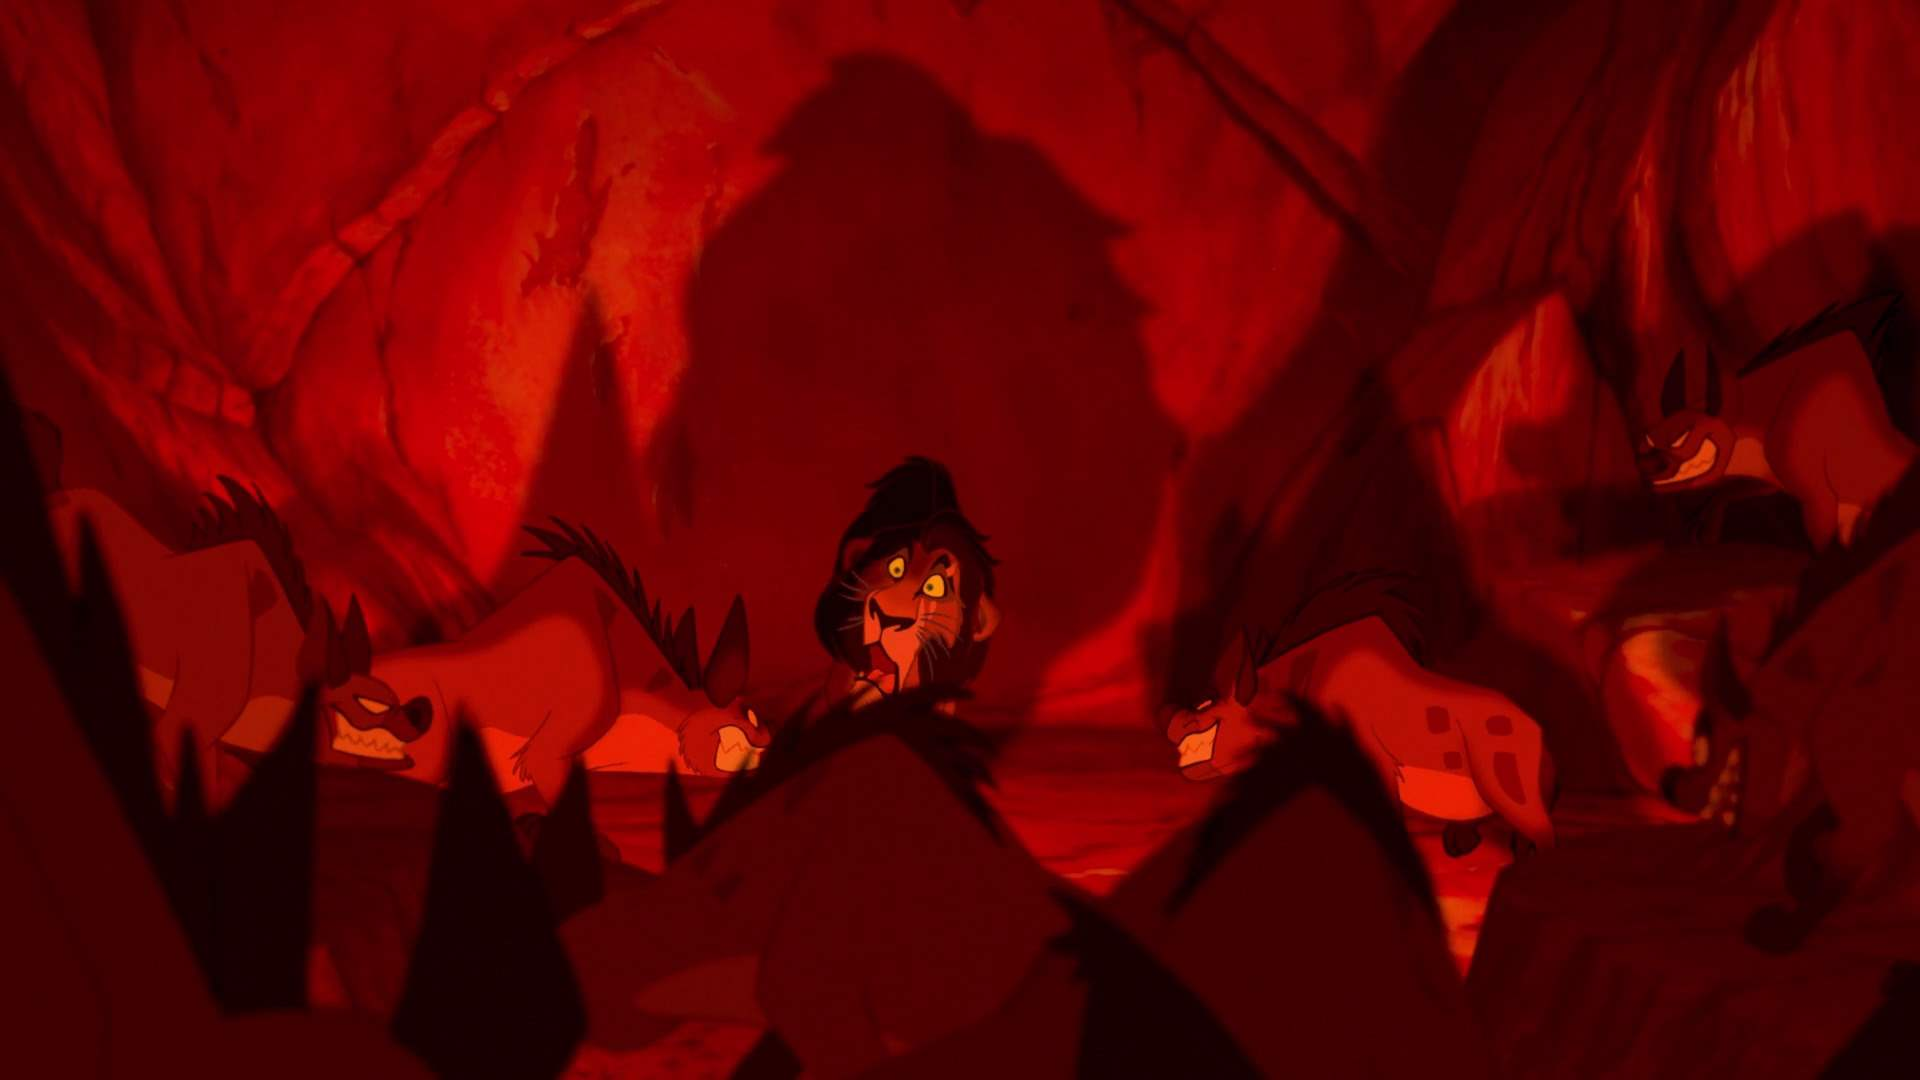 Scar's death in The Lion King